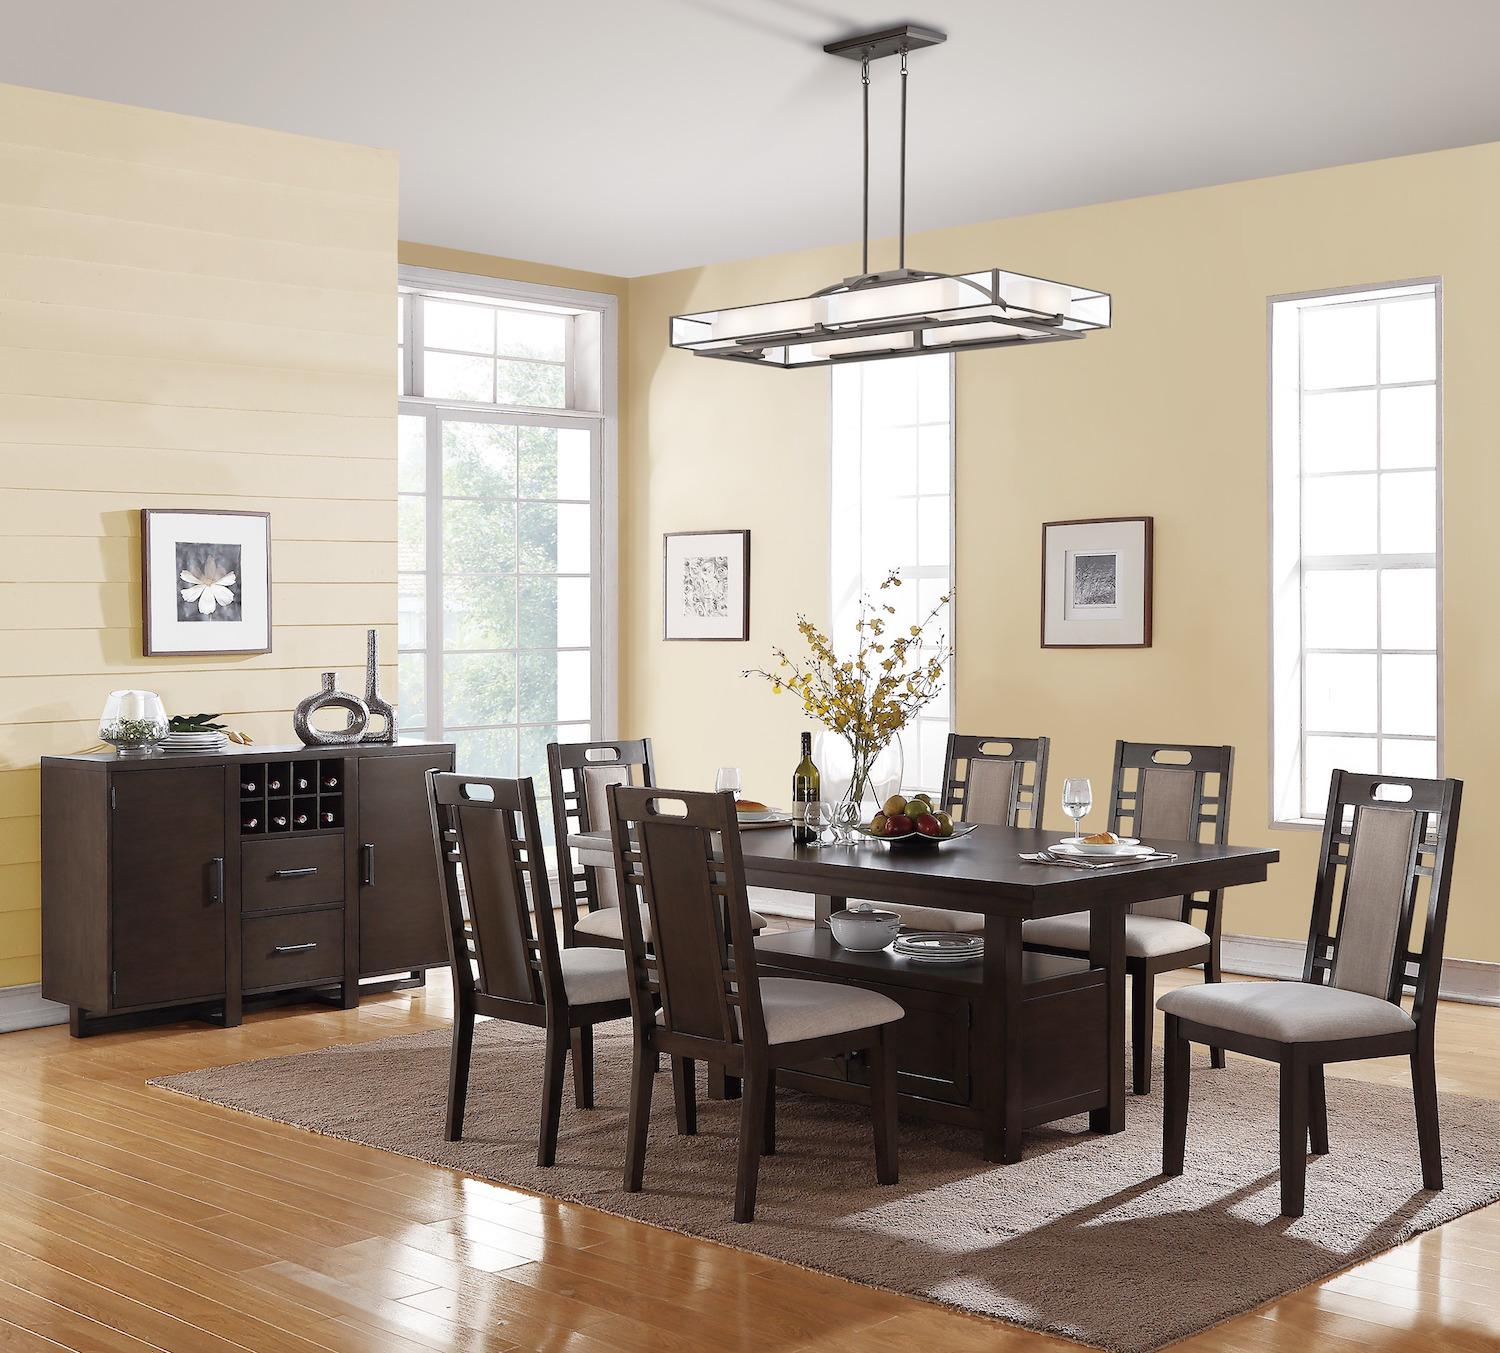 Amable 7 Piece Dining Set